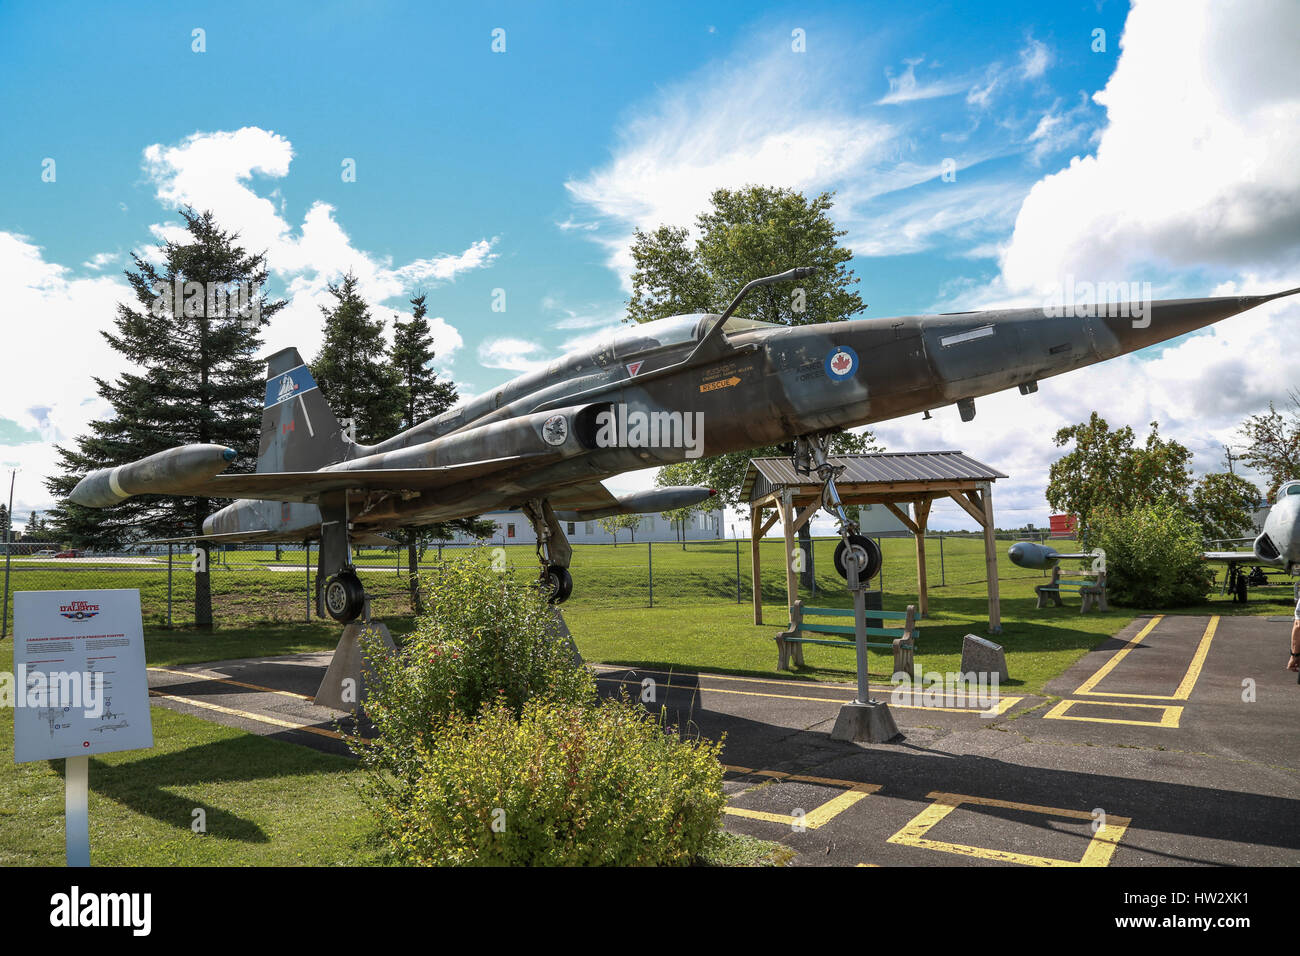 Canadian Forces CF-5A Freedom Fighter on Display at Air Defence Museum, CFB Bagotville, Saguenay, QC, Canada - Stock Image